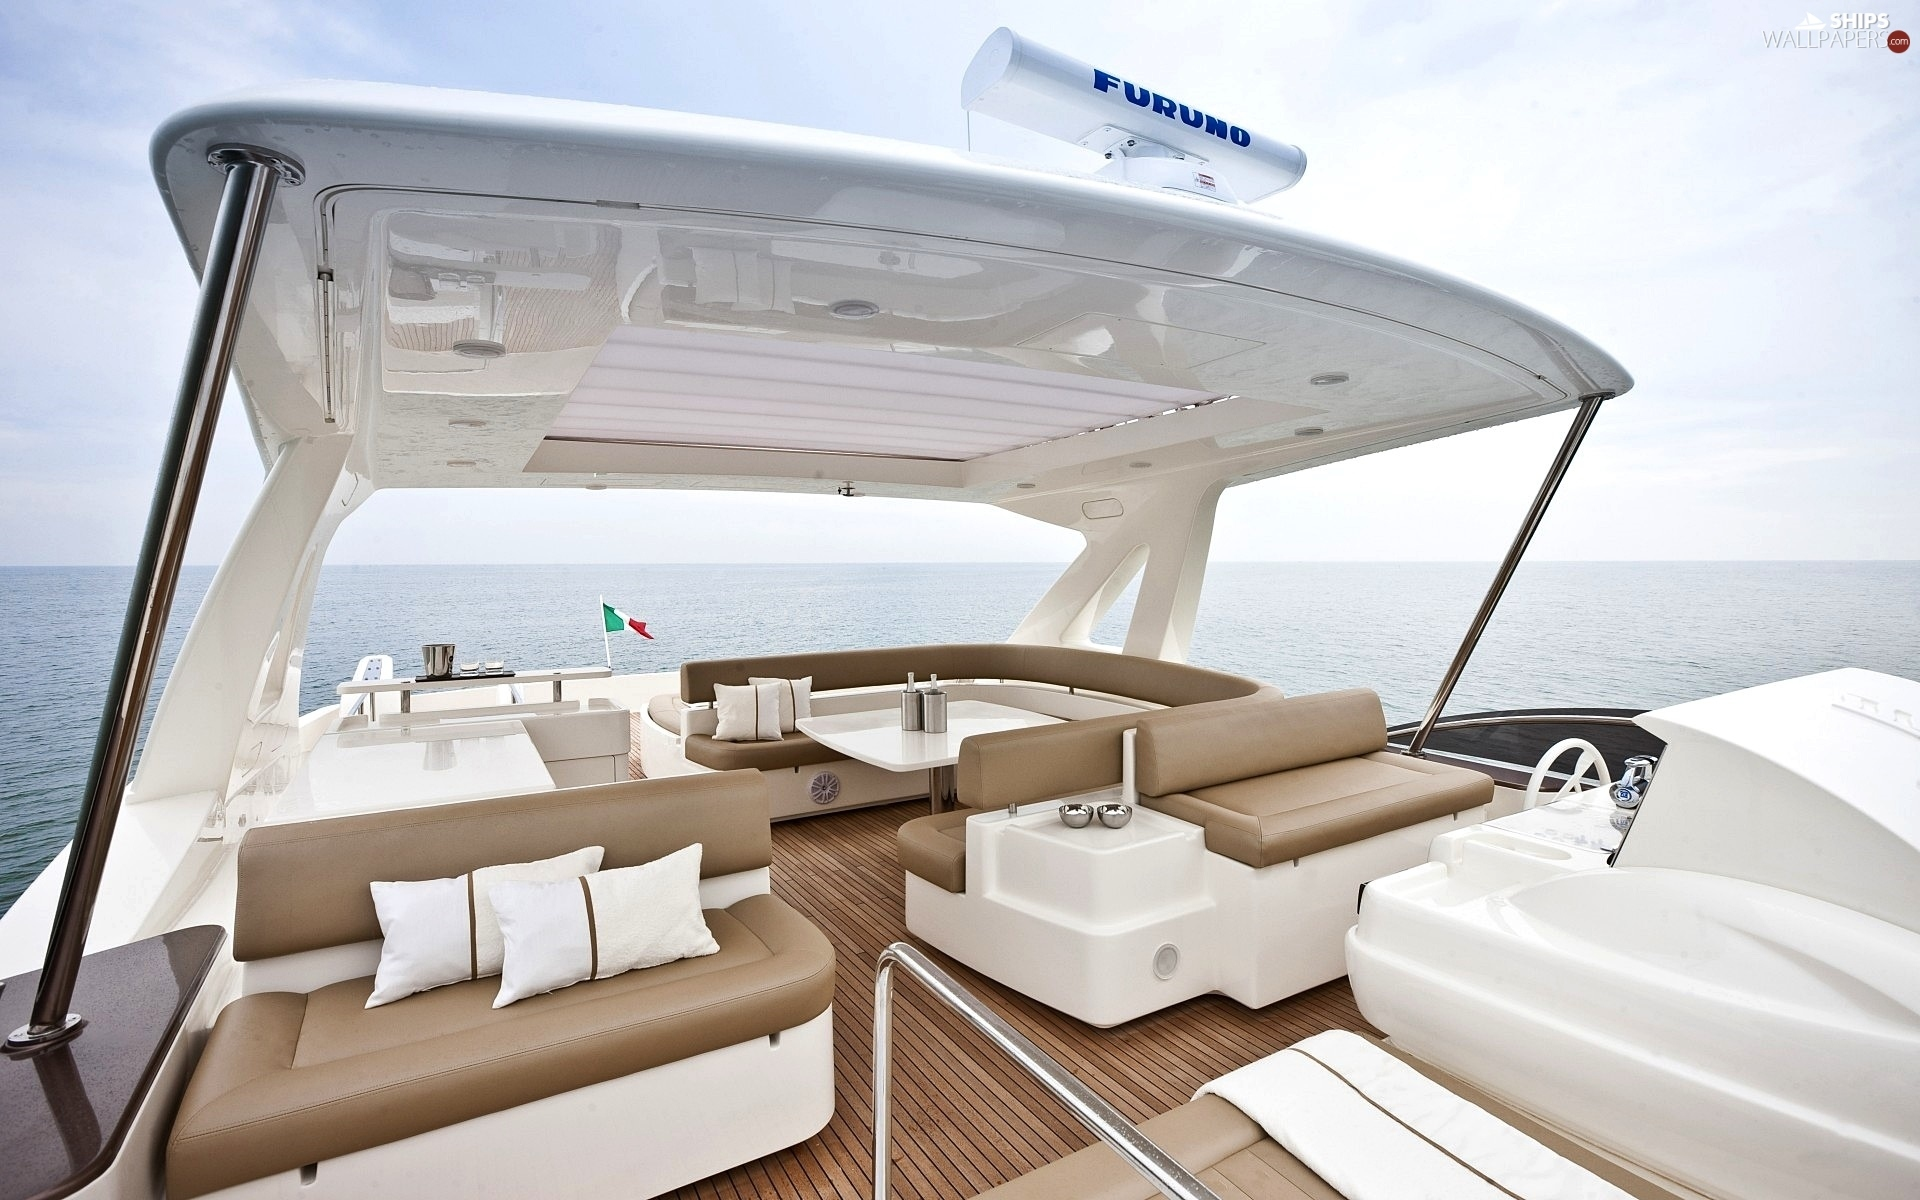 http://weboatlovers.wehomeowners.com/wp-content/uploads/2016/07/Yacht-Photo_002.jpg